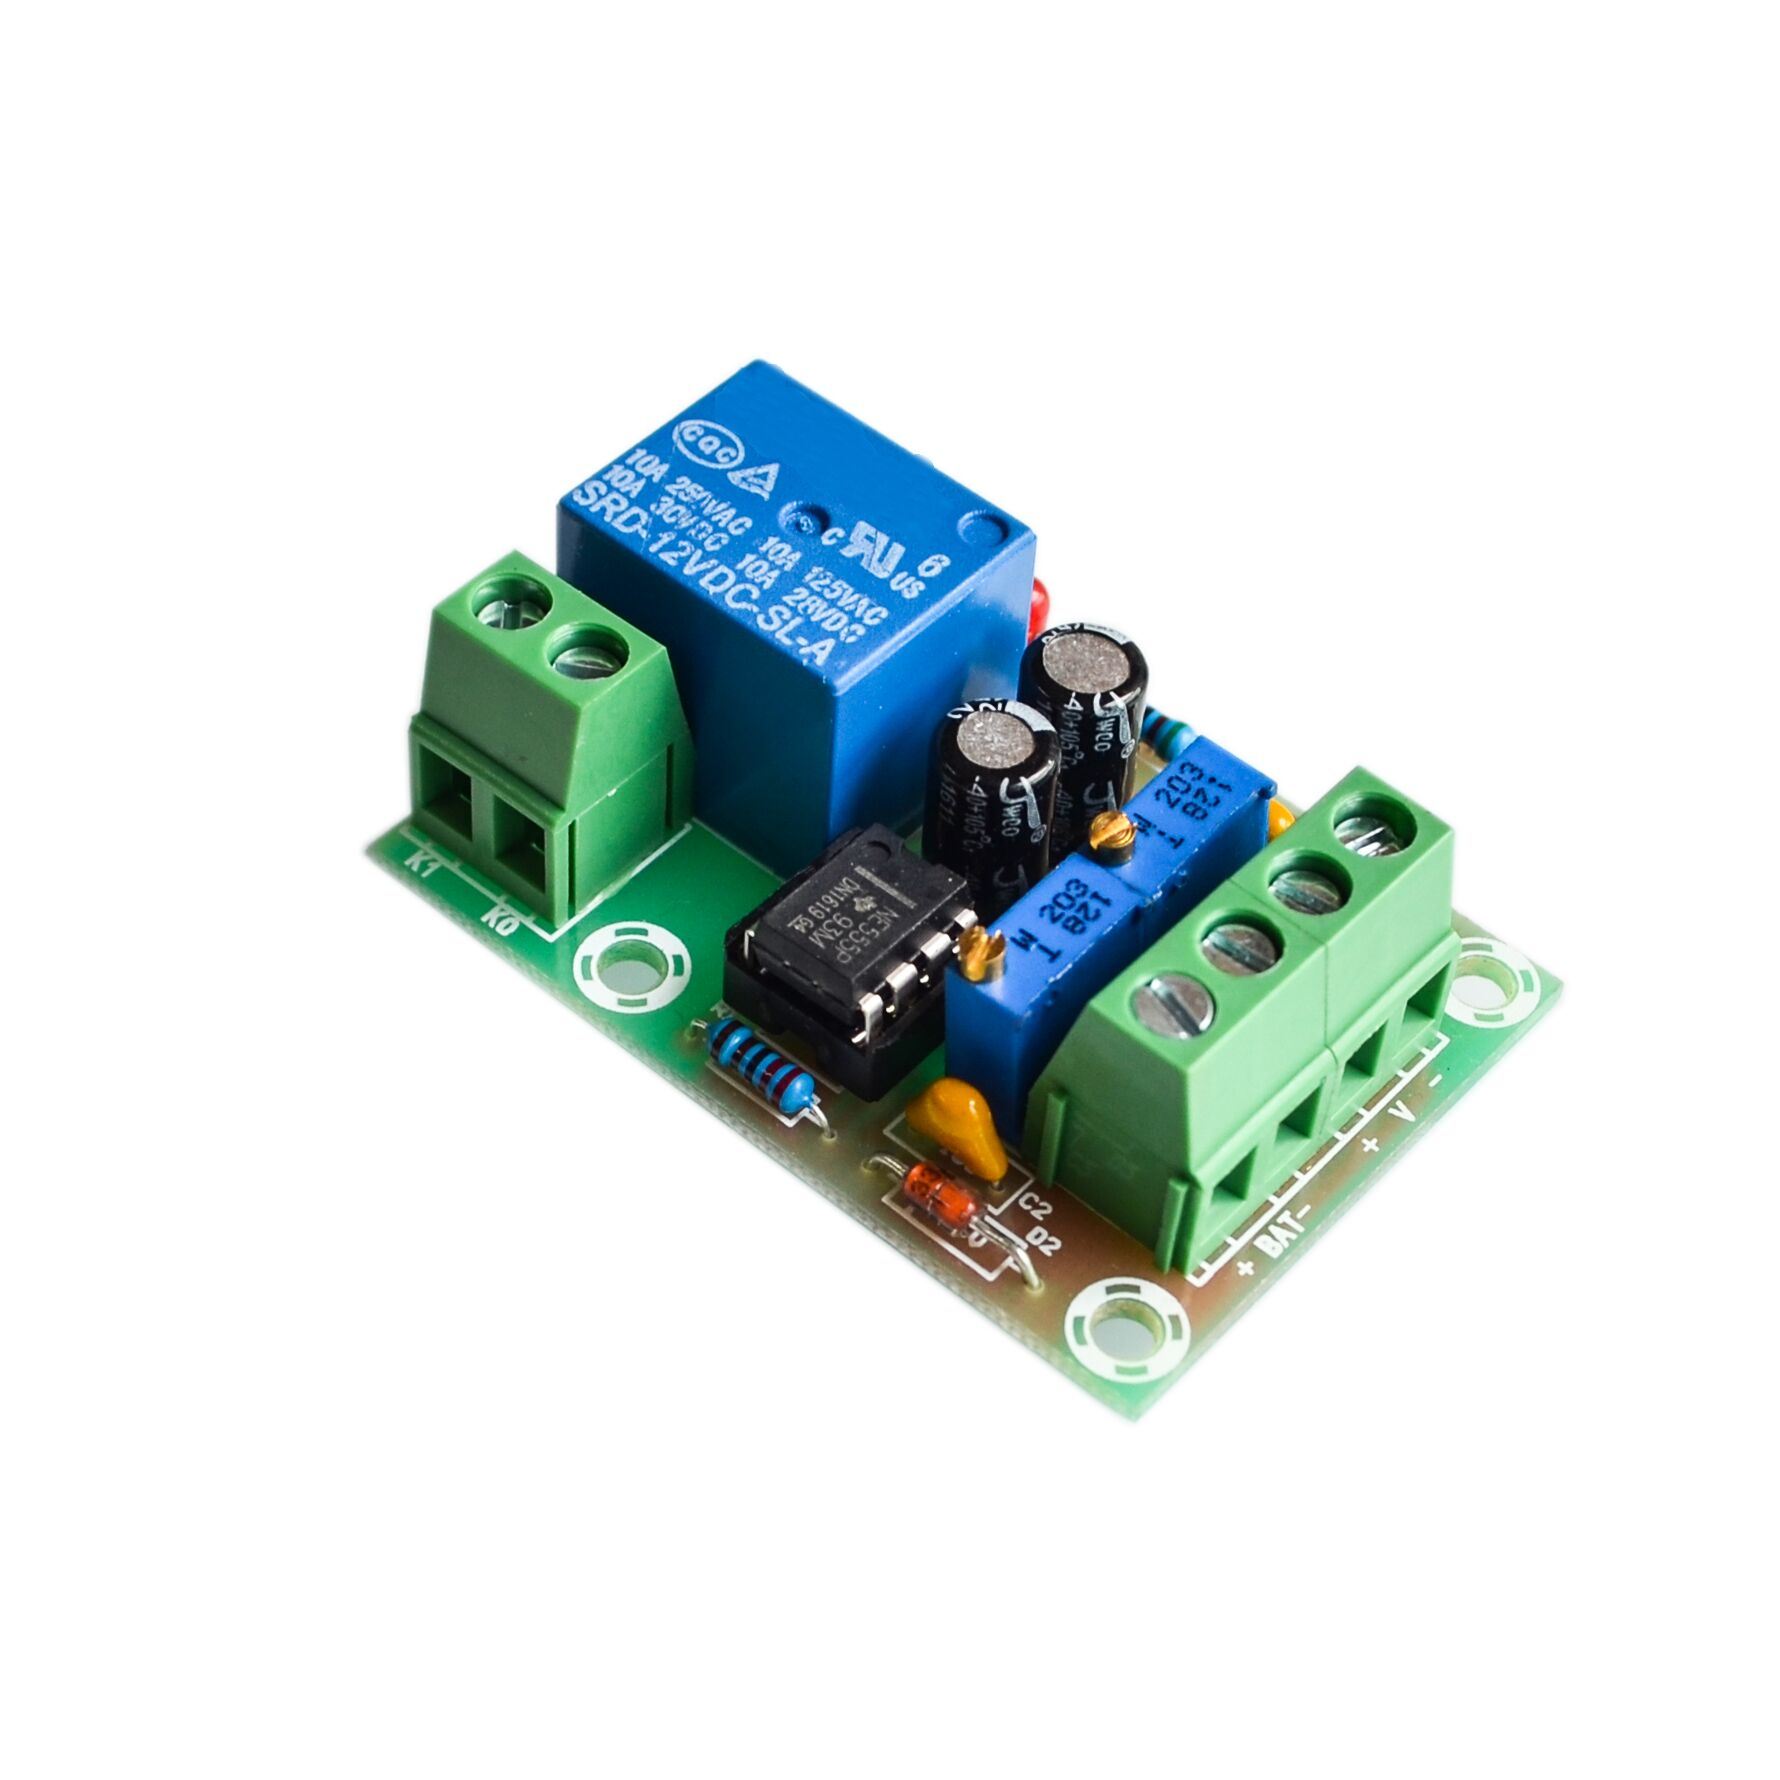 Mc34063a Positive Voltage Negative Module Dc 36v Regulator 12v 15a For Battery By Mc34063 Xh M601 Charging Control Board Intelligent Charger Power Panel Automatic